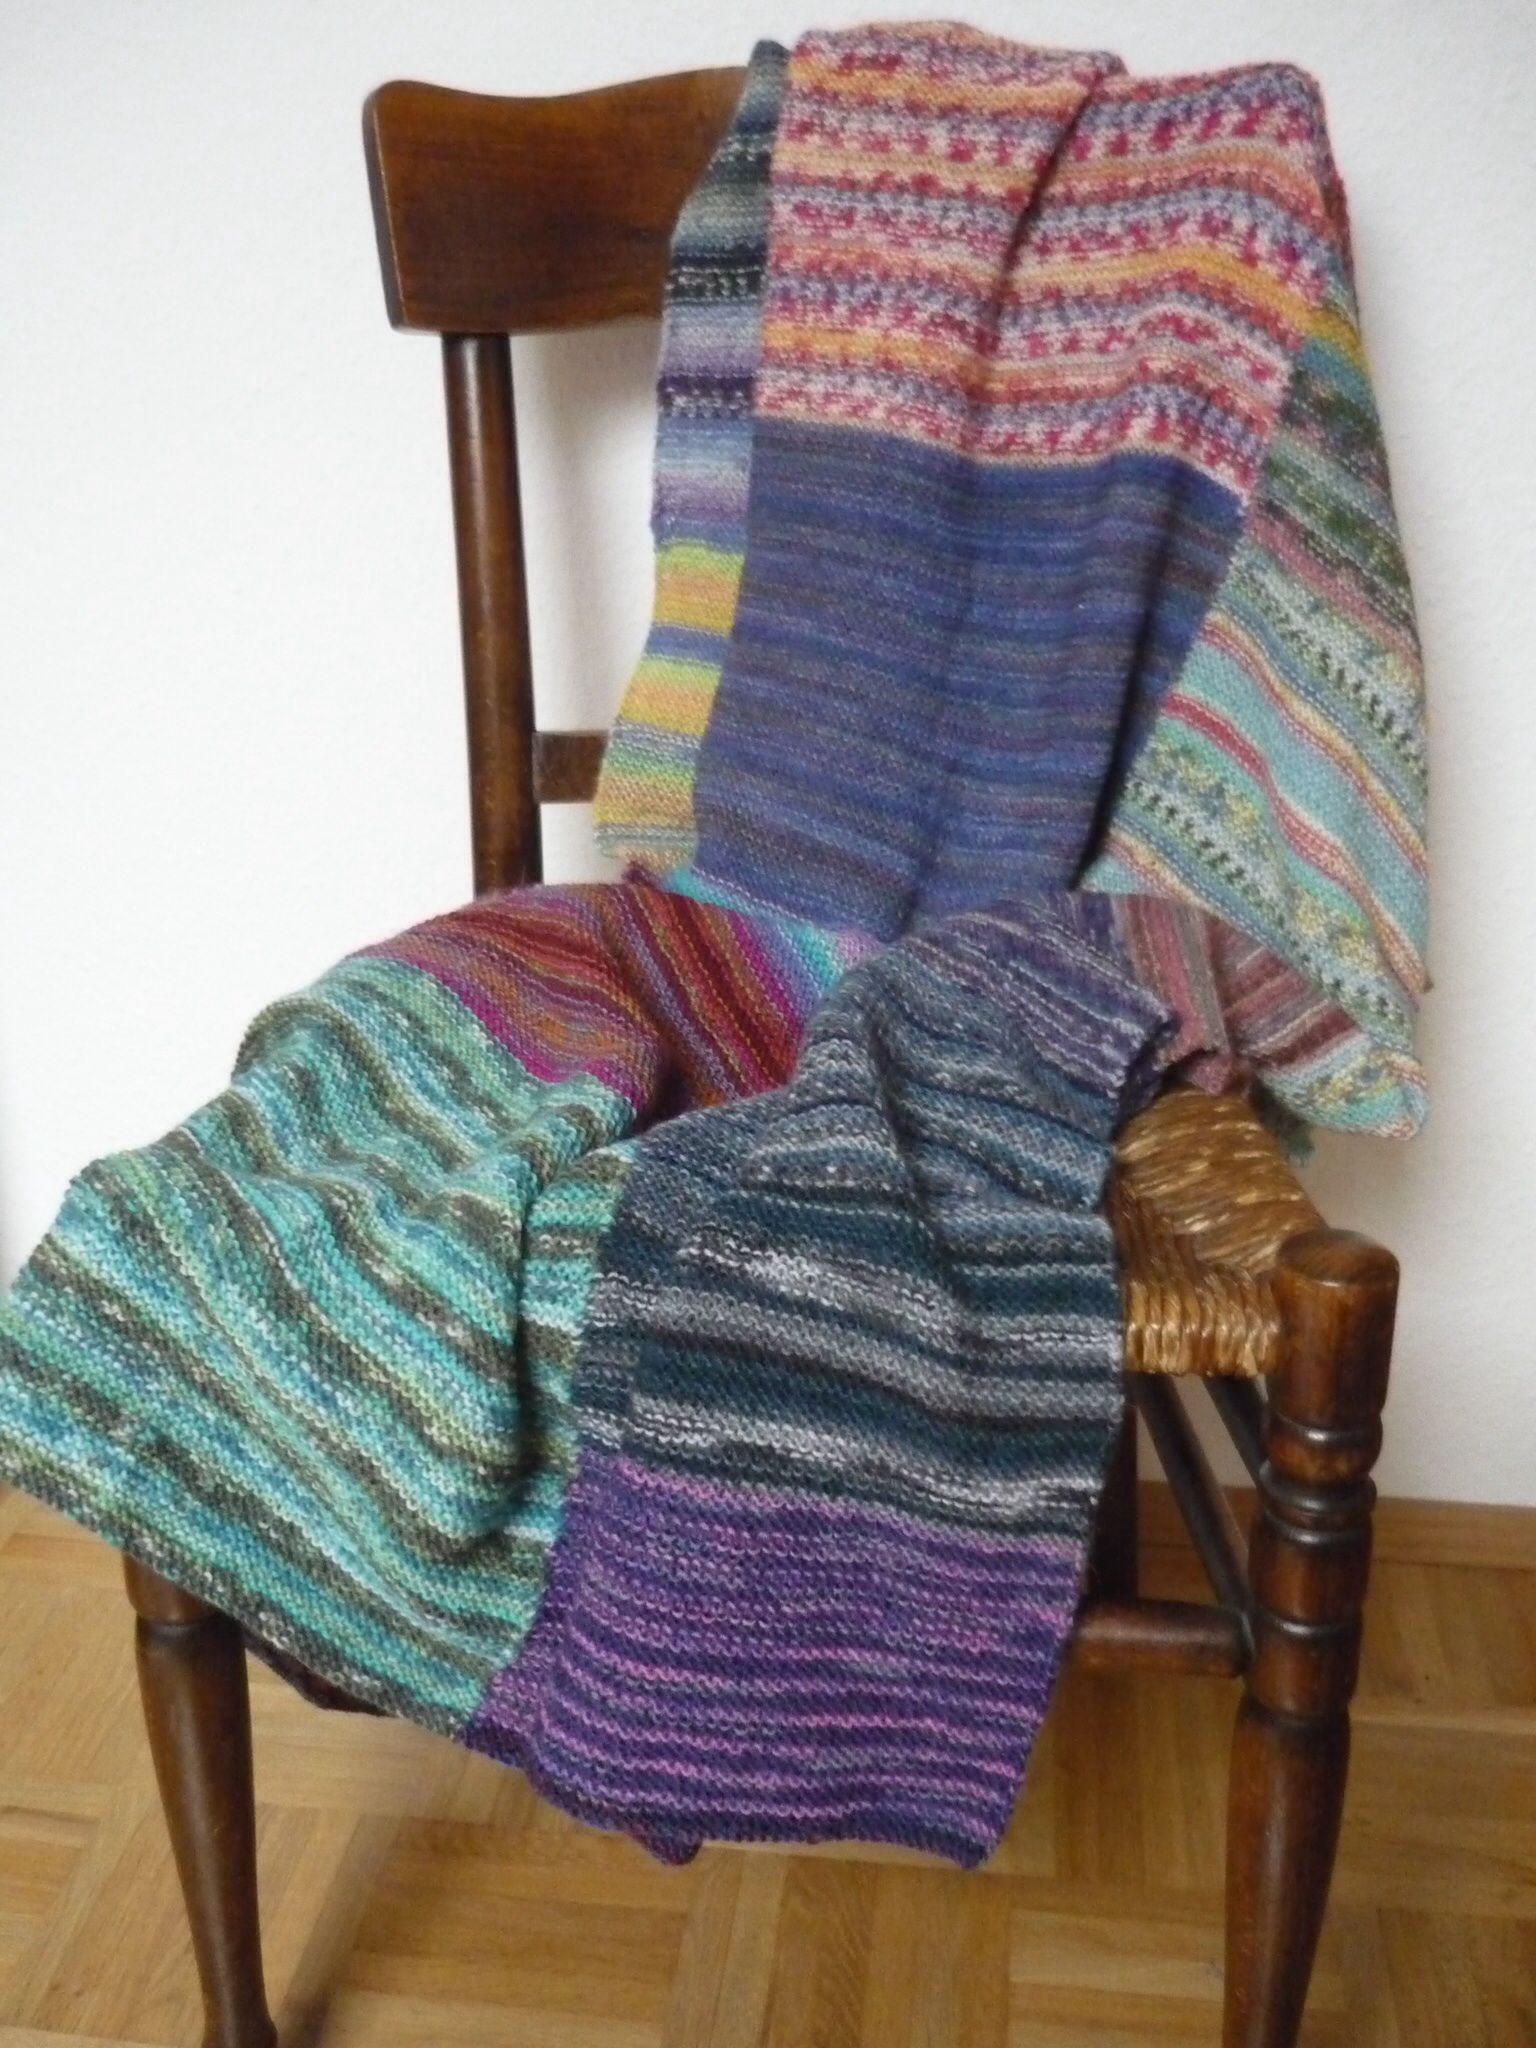 Decke Stricken Patchwork Aus Sockenwolle Reste Stricken Patchwork Stricken Wollreste Decke Stricken